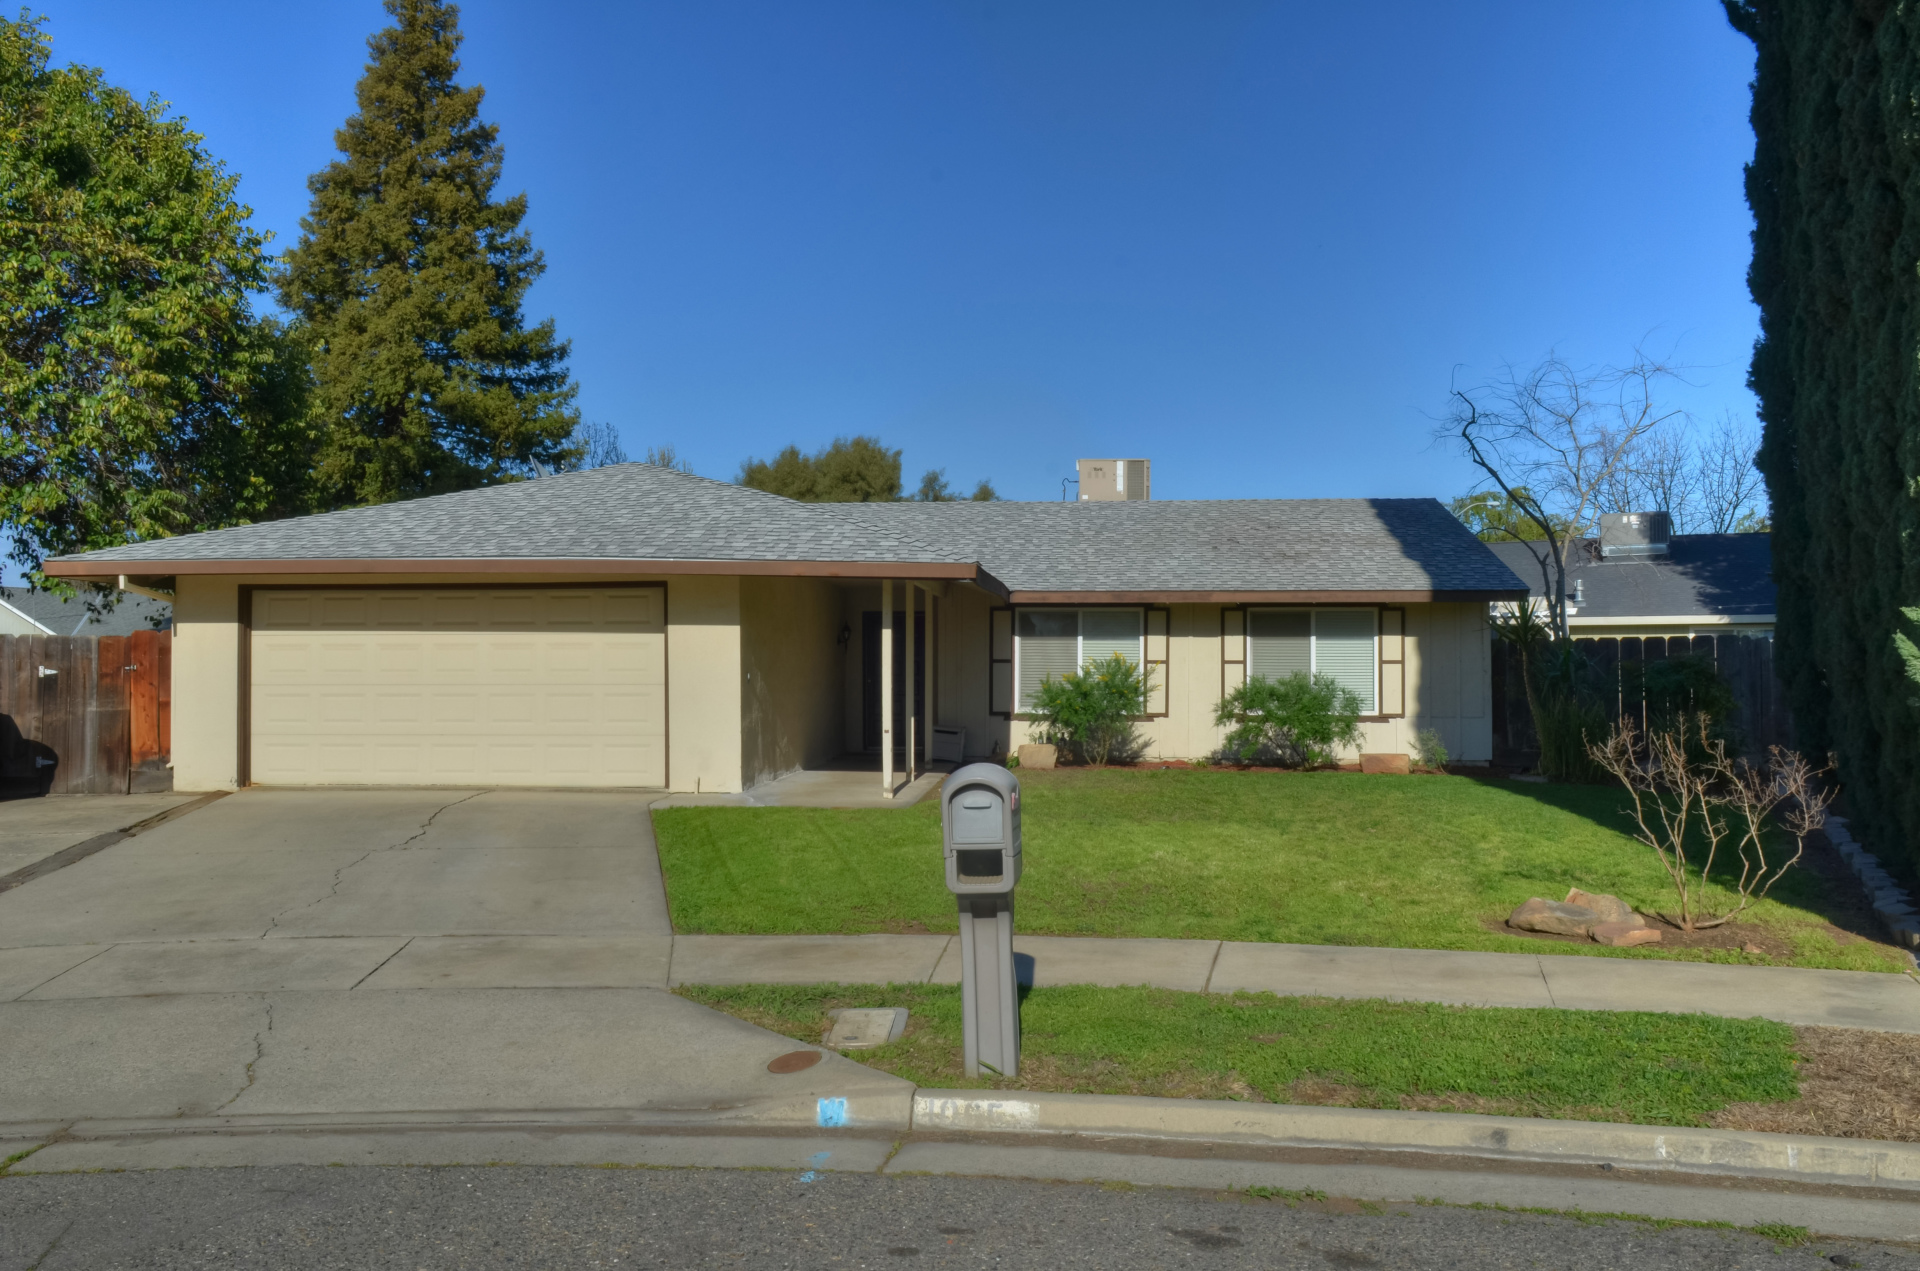 1065 Half Dome Ct. Merced, Ca 95340